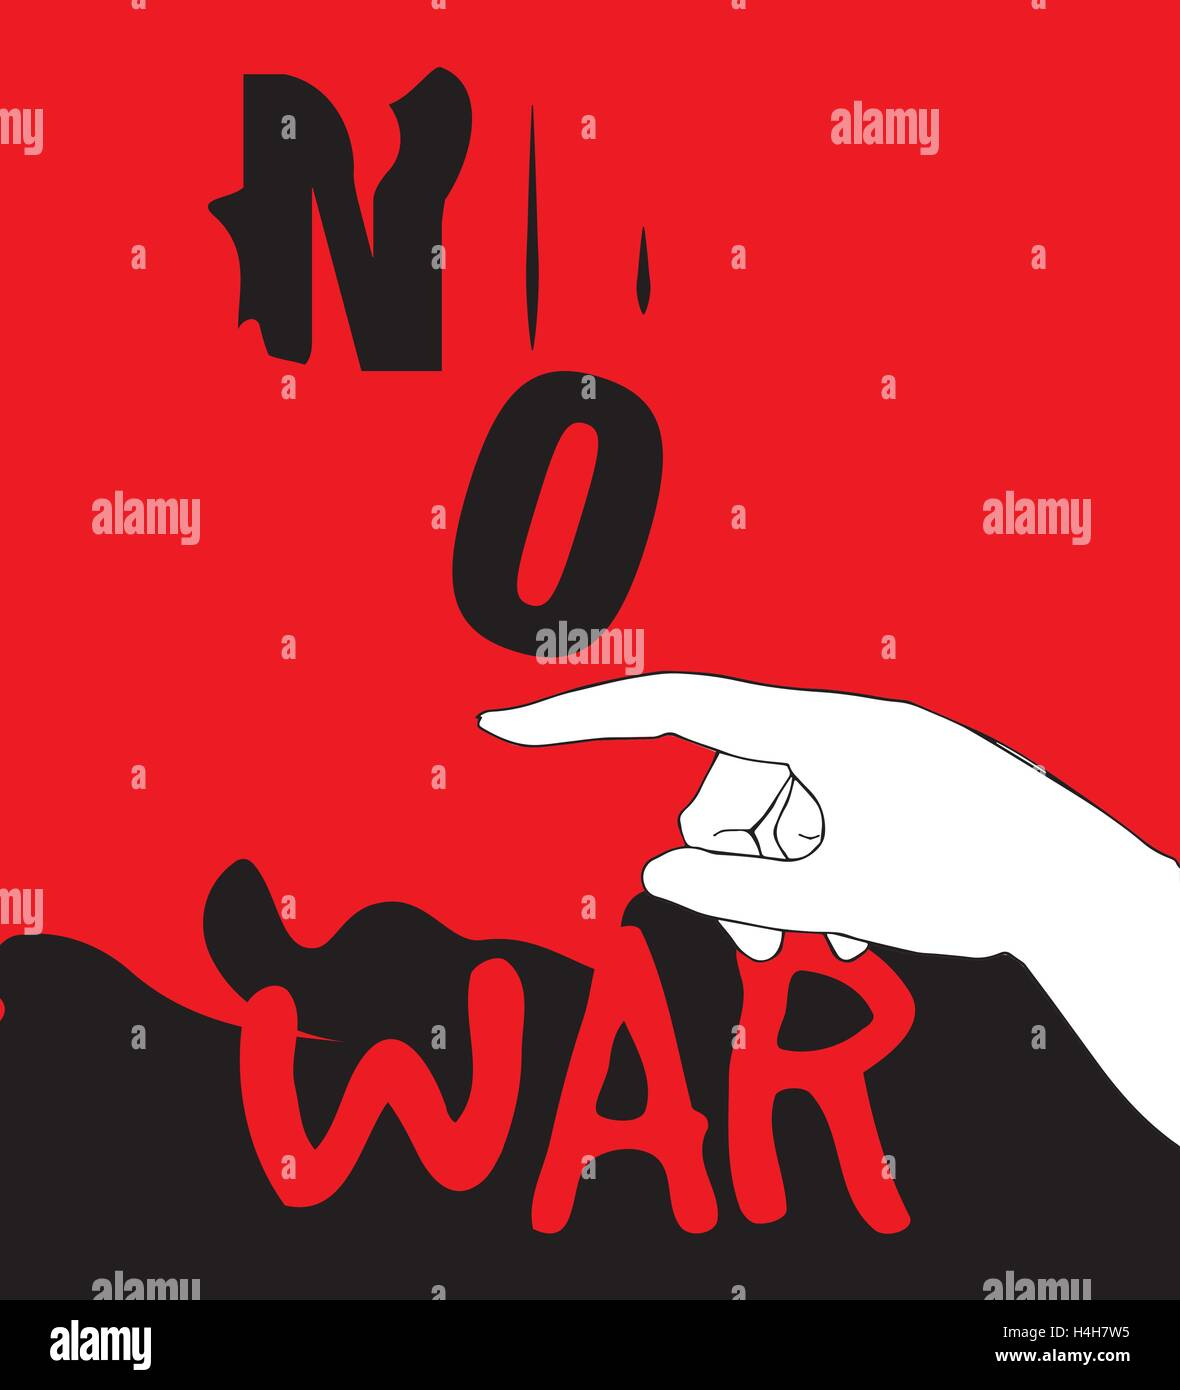 No War Poster Design, AI 10 supported. - Stock Vector